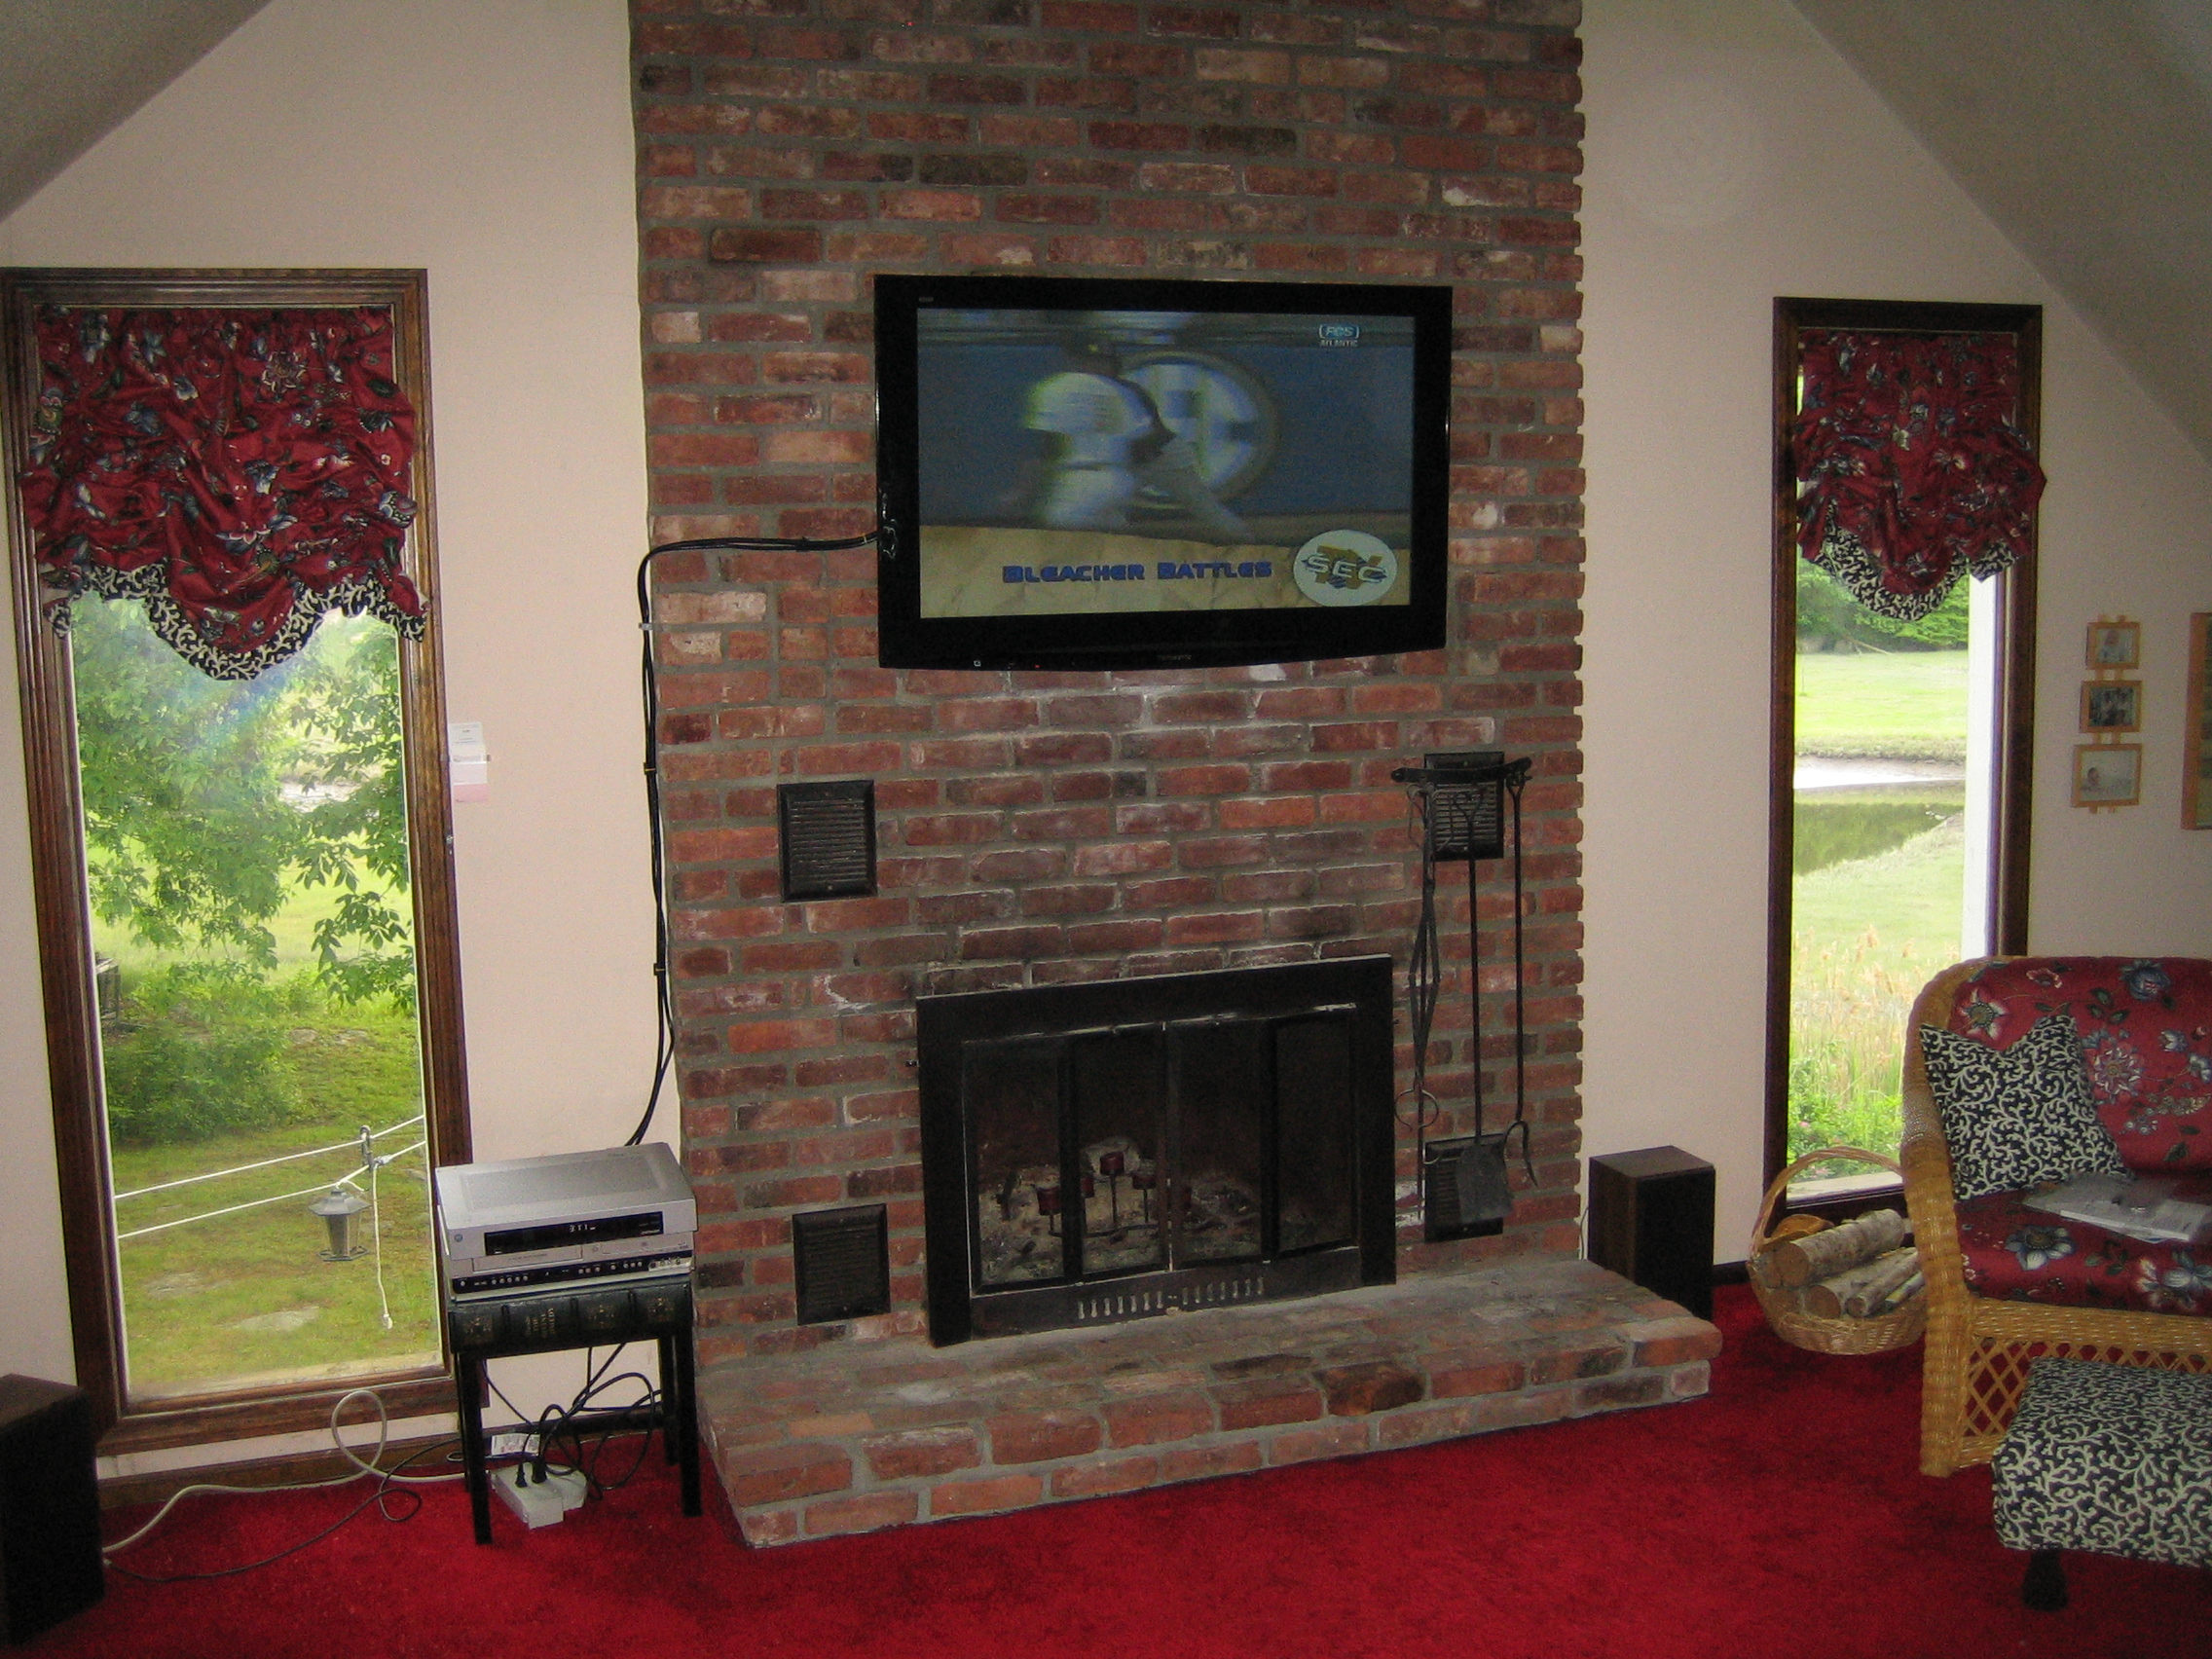 Full size of mount tv on brick fireplace hide wires how to hang a tv on mount tv to brick fireplace mount brick fireplace hide wires mounting plasma pitched ceiling built ins full size of mount flat screen tv brick wall how to hang things on brick walls